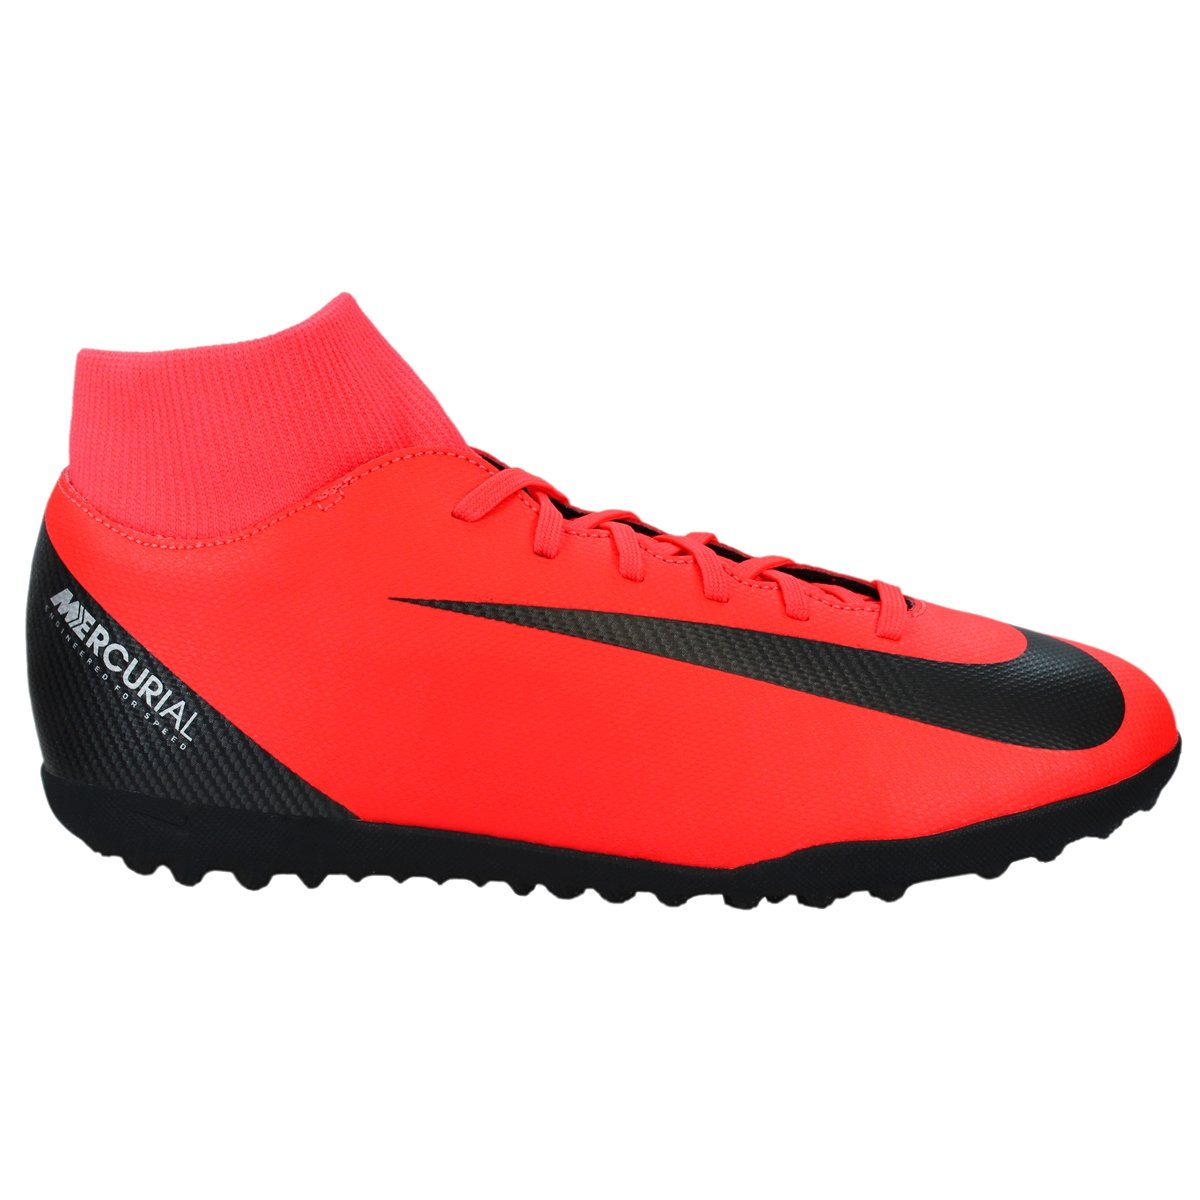 7486d4db3e3b7 CHUTEIRA SOCIETY NIKE MERCURIAL CR7 SUPERFLY 6 TF ?